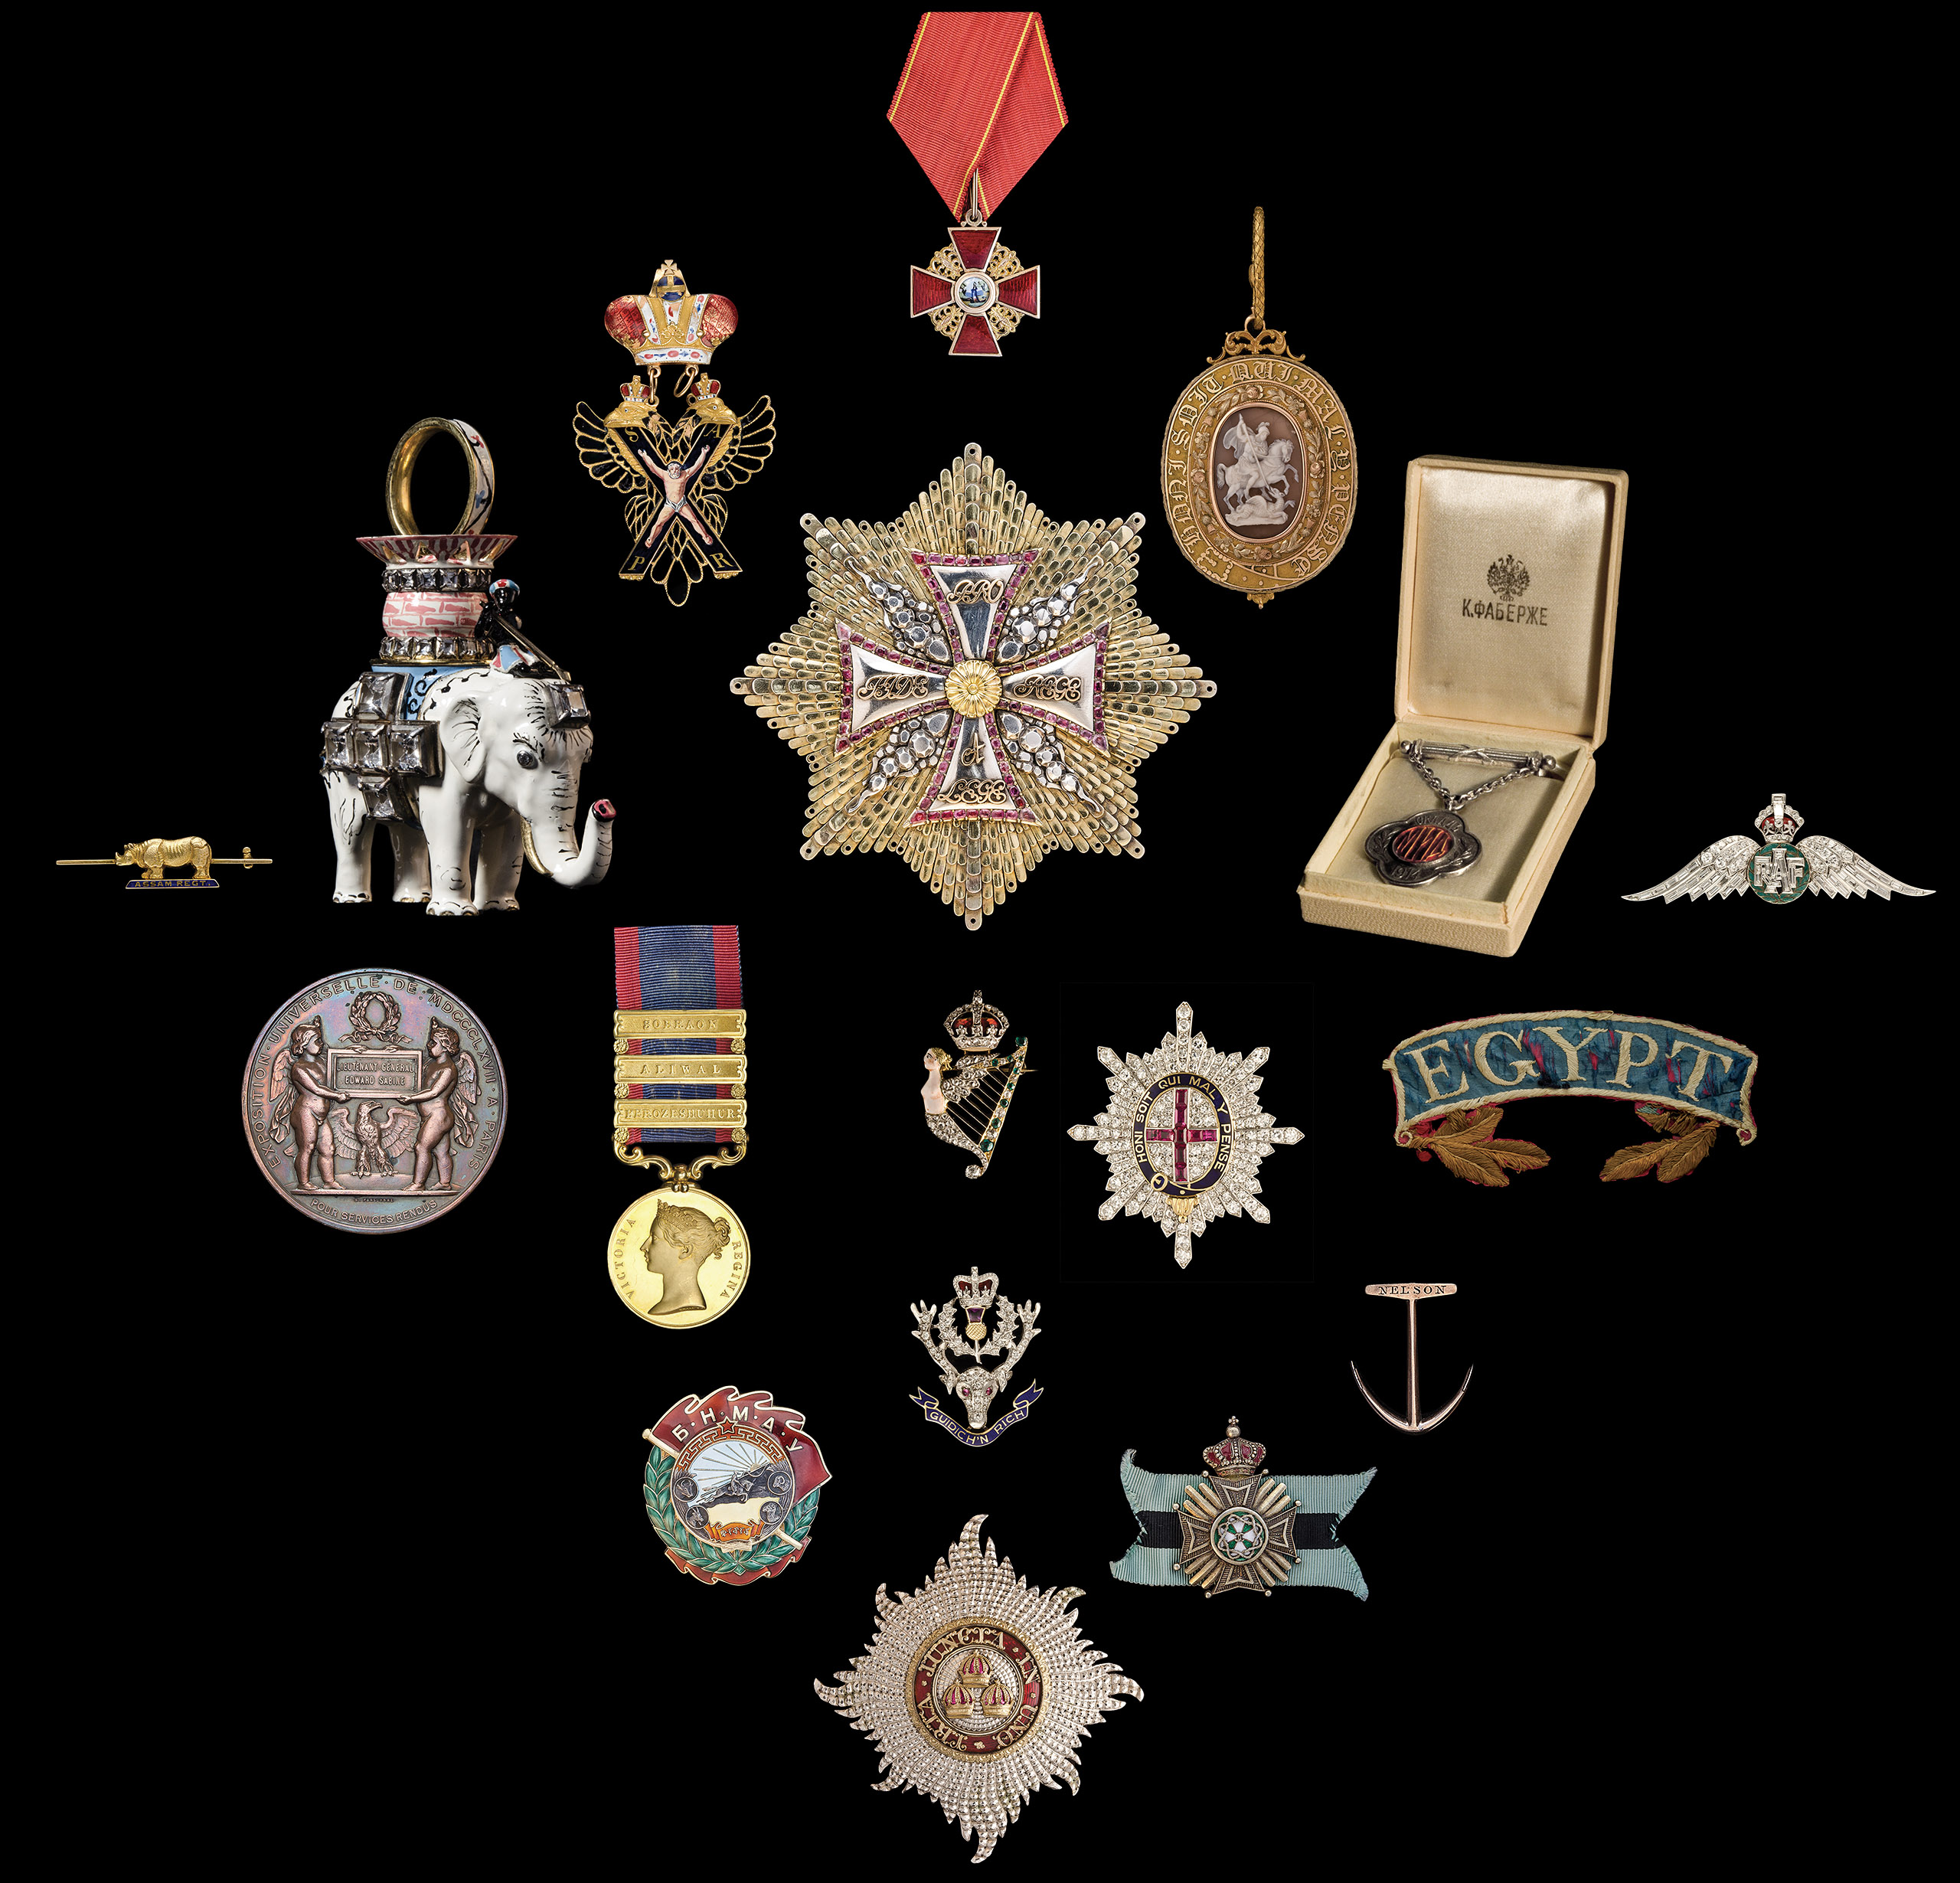 Photography of Medals, Orders and Decorations from several periods and countries, photographed for Morton and Eden in association with Sotheby's sold in auction in London Photography and retouch by Maria Queralt